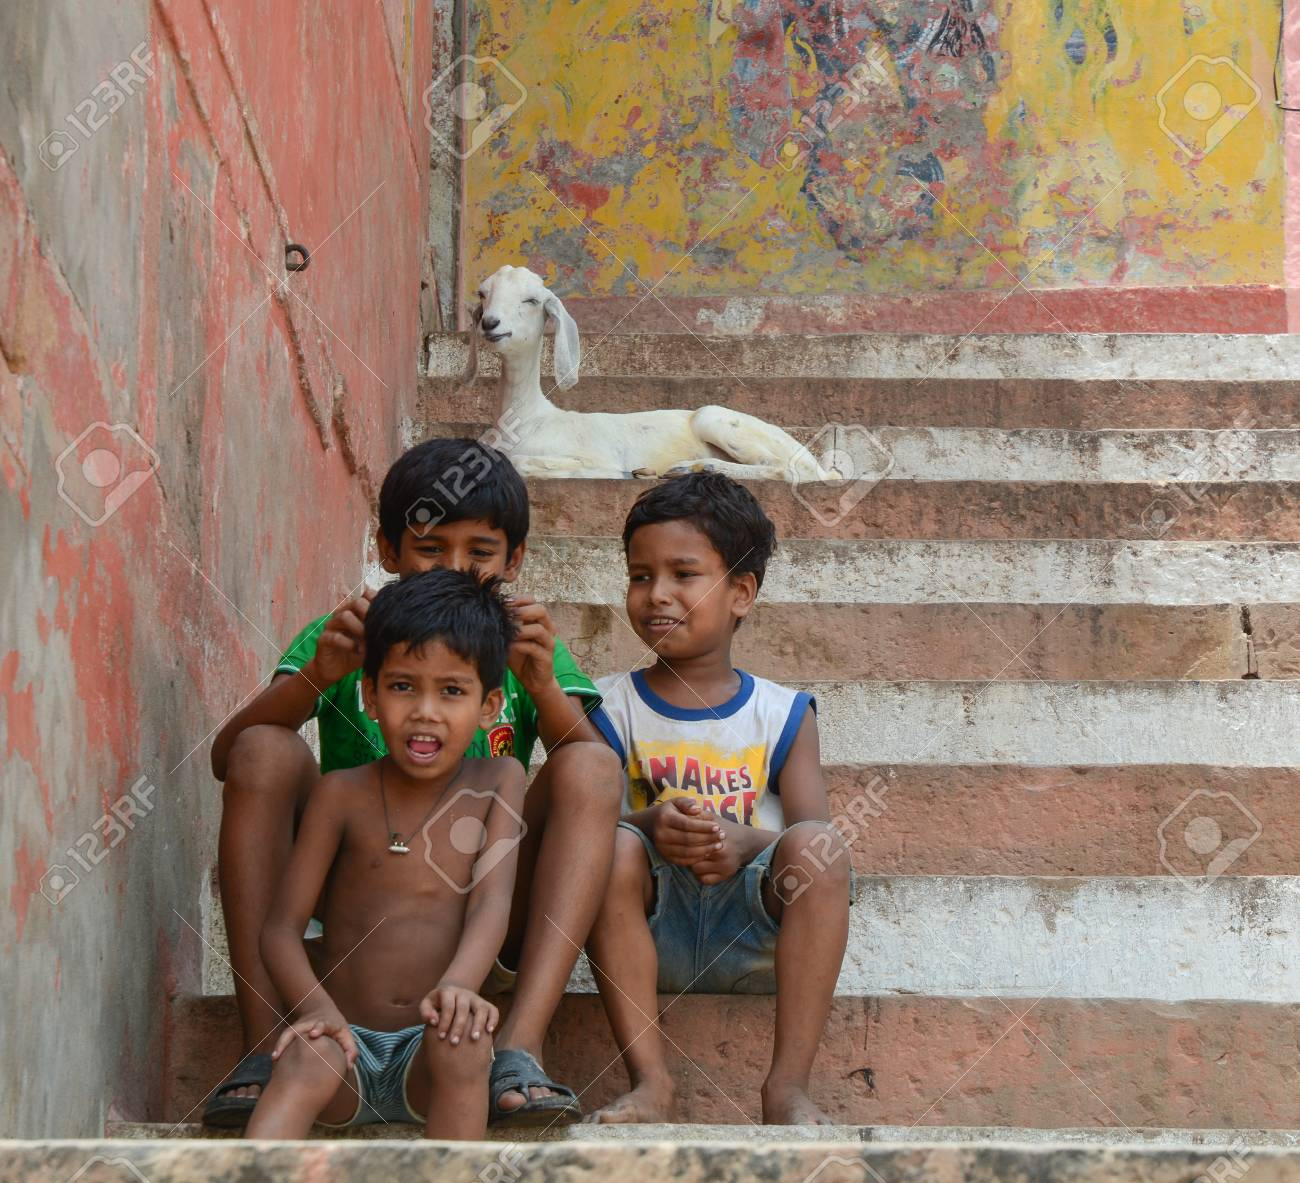 8f07c5de80 Stock Photo - Varanasi, India - Jul 12, 2015. Unidentified young boys in an  Indian village happily sitting on steps and looking at camera, Varanasi,  India.